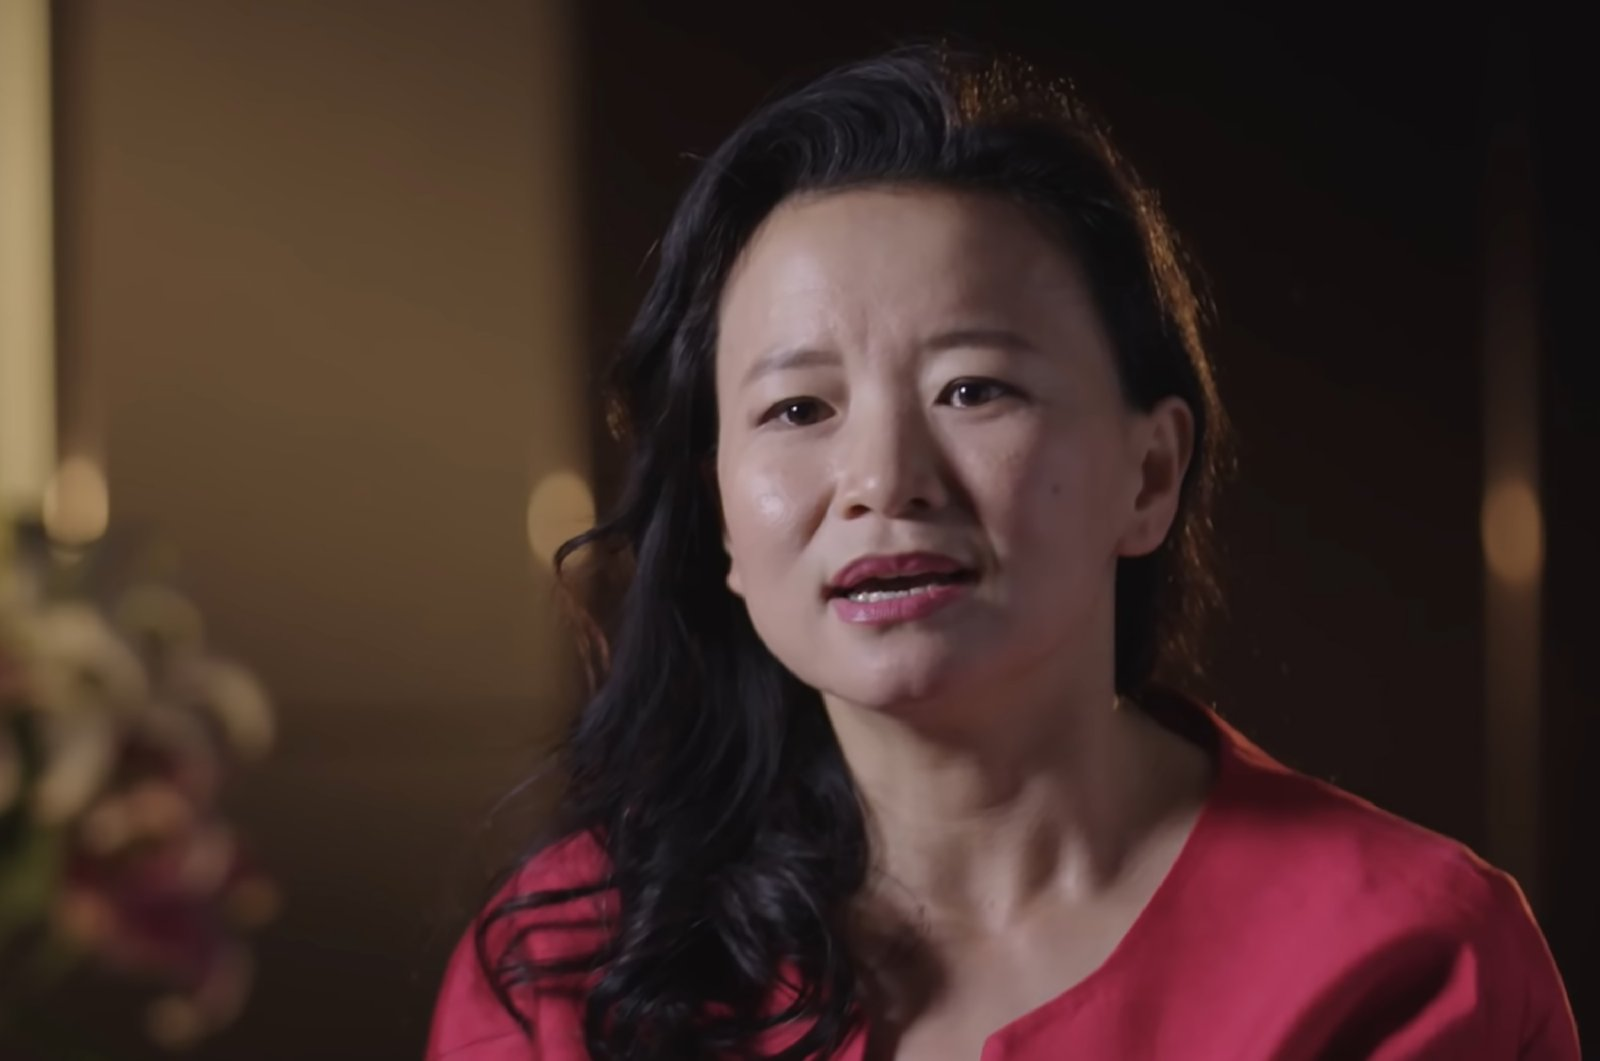 This undated frame grab taken from a handout video shows Australian journalist Cheng Lei. (AFP PHOTO /Australia's Department of Foreign Affairs and Trade (DFAT) / Australia Global Alumni)